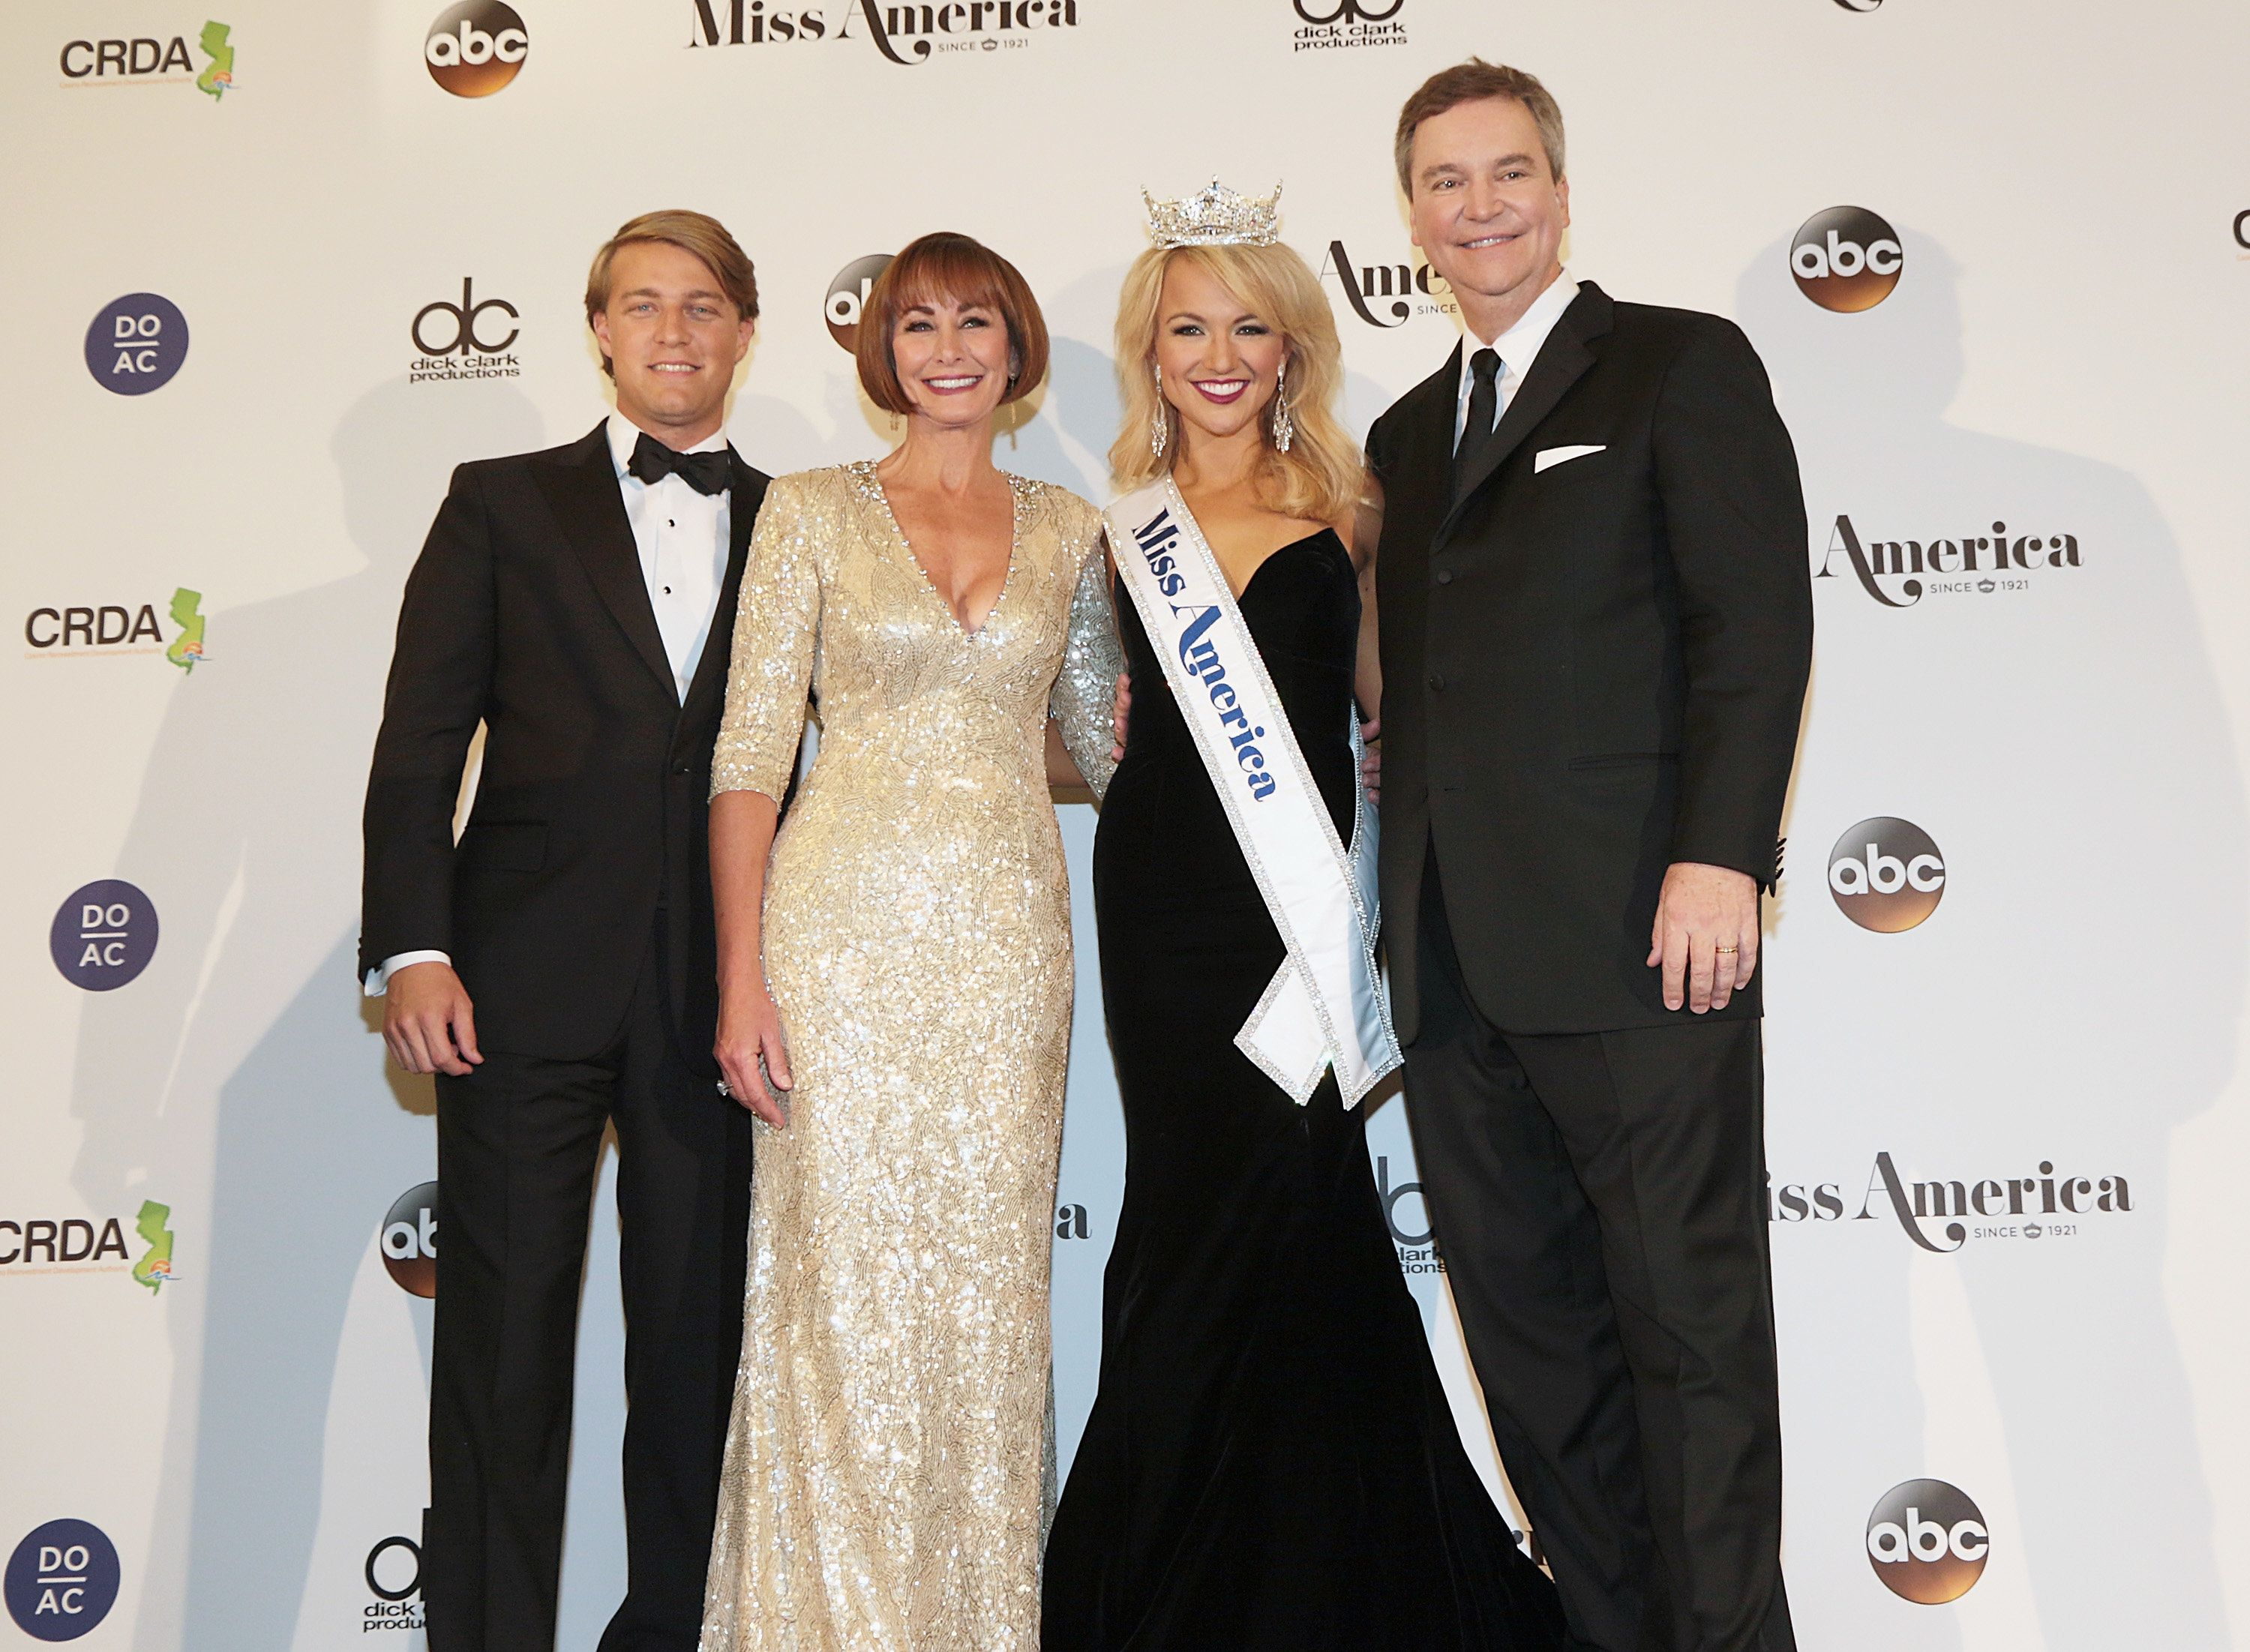 Miss America CEO and Board Chair Resign Under Pressure Amid